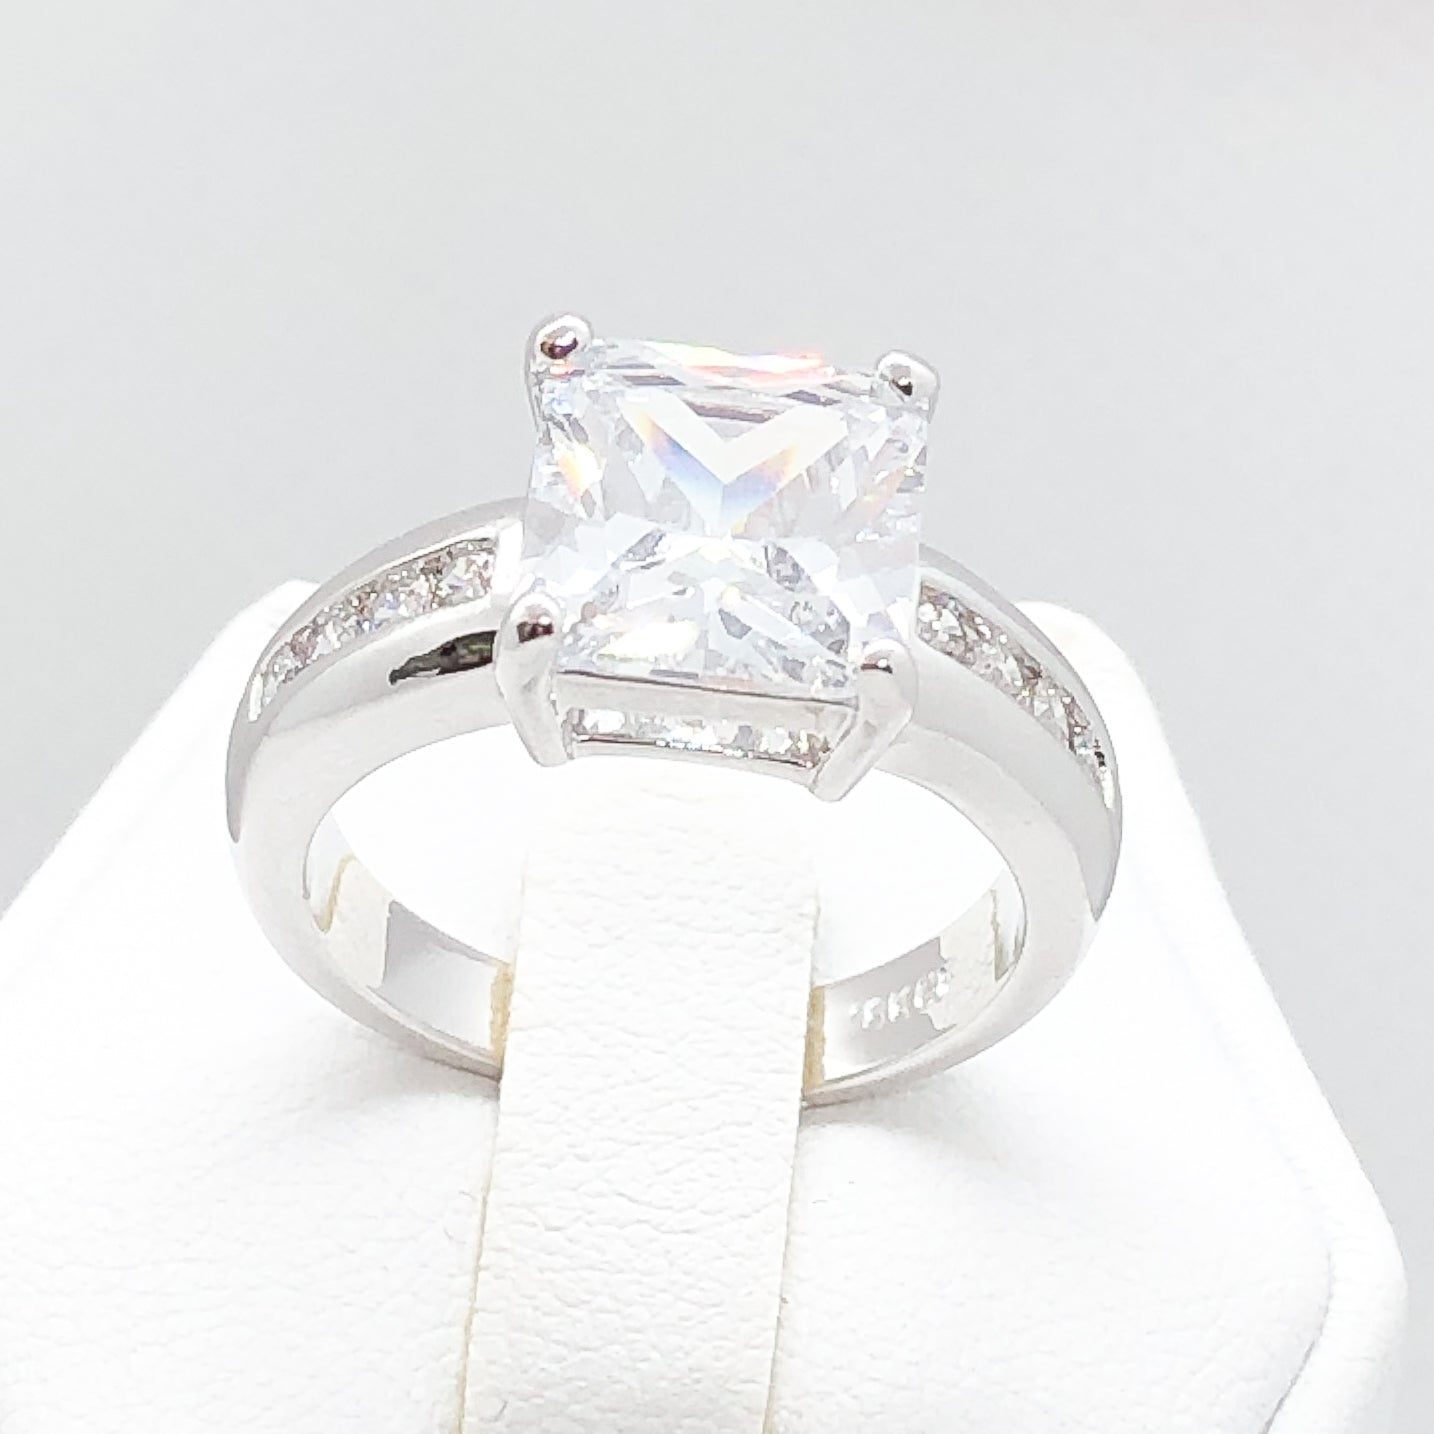 ID:R4068 Women 18K White Gold GF Fashion Jewelry Engagement Wedding Solitaire with Accent Bridal Diamonique Ring